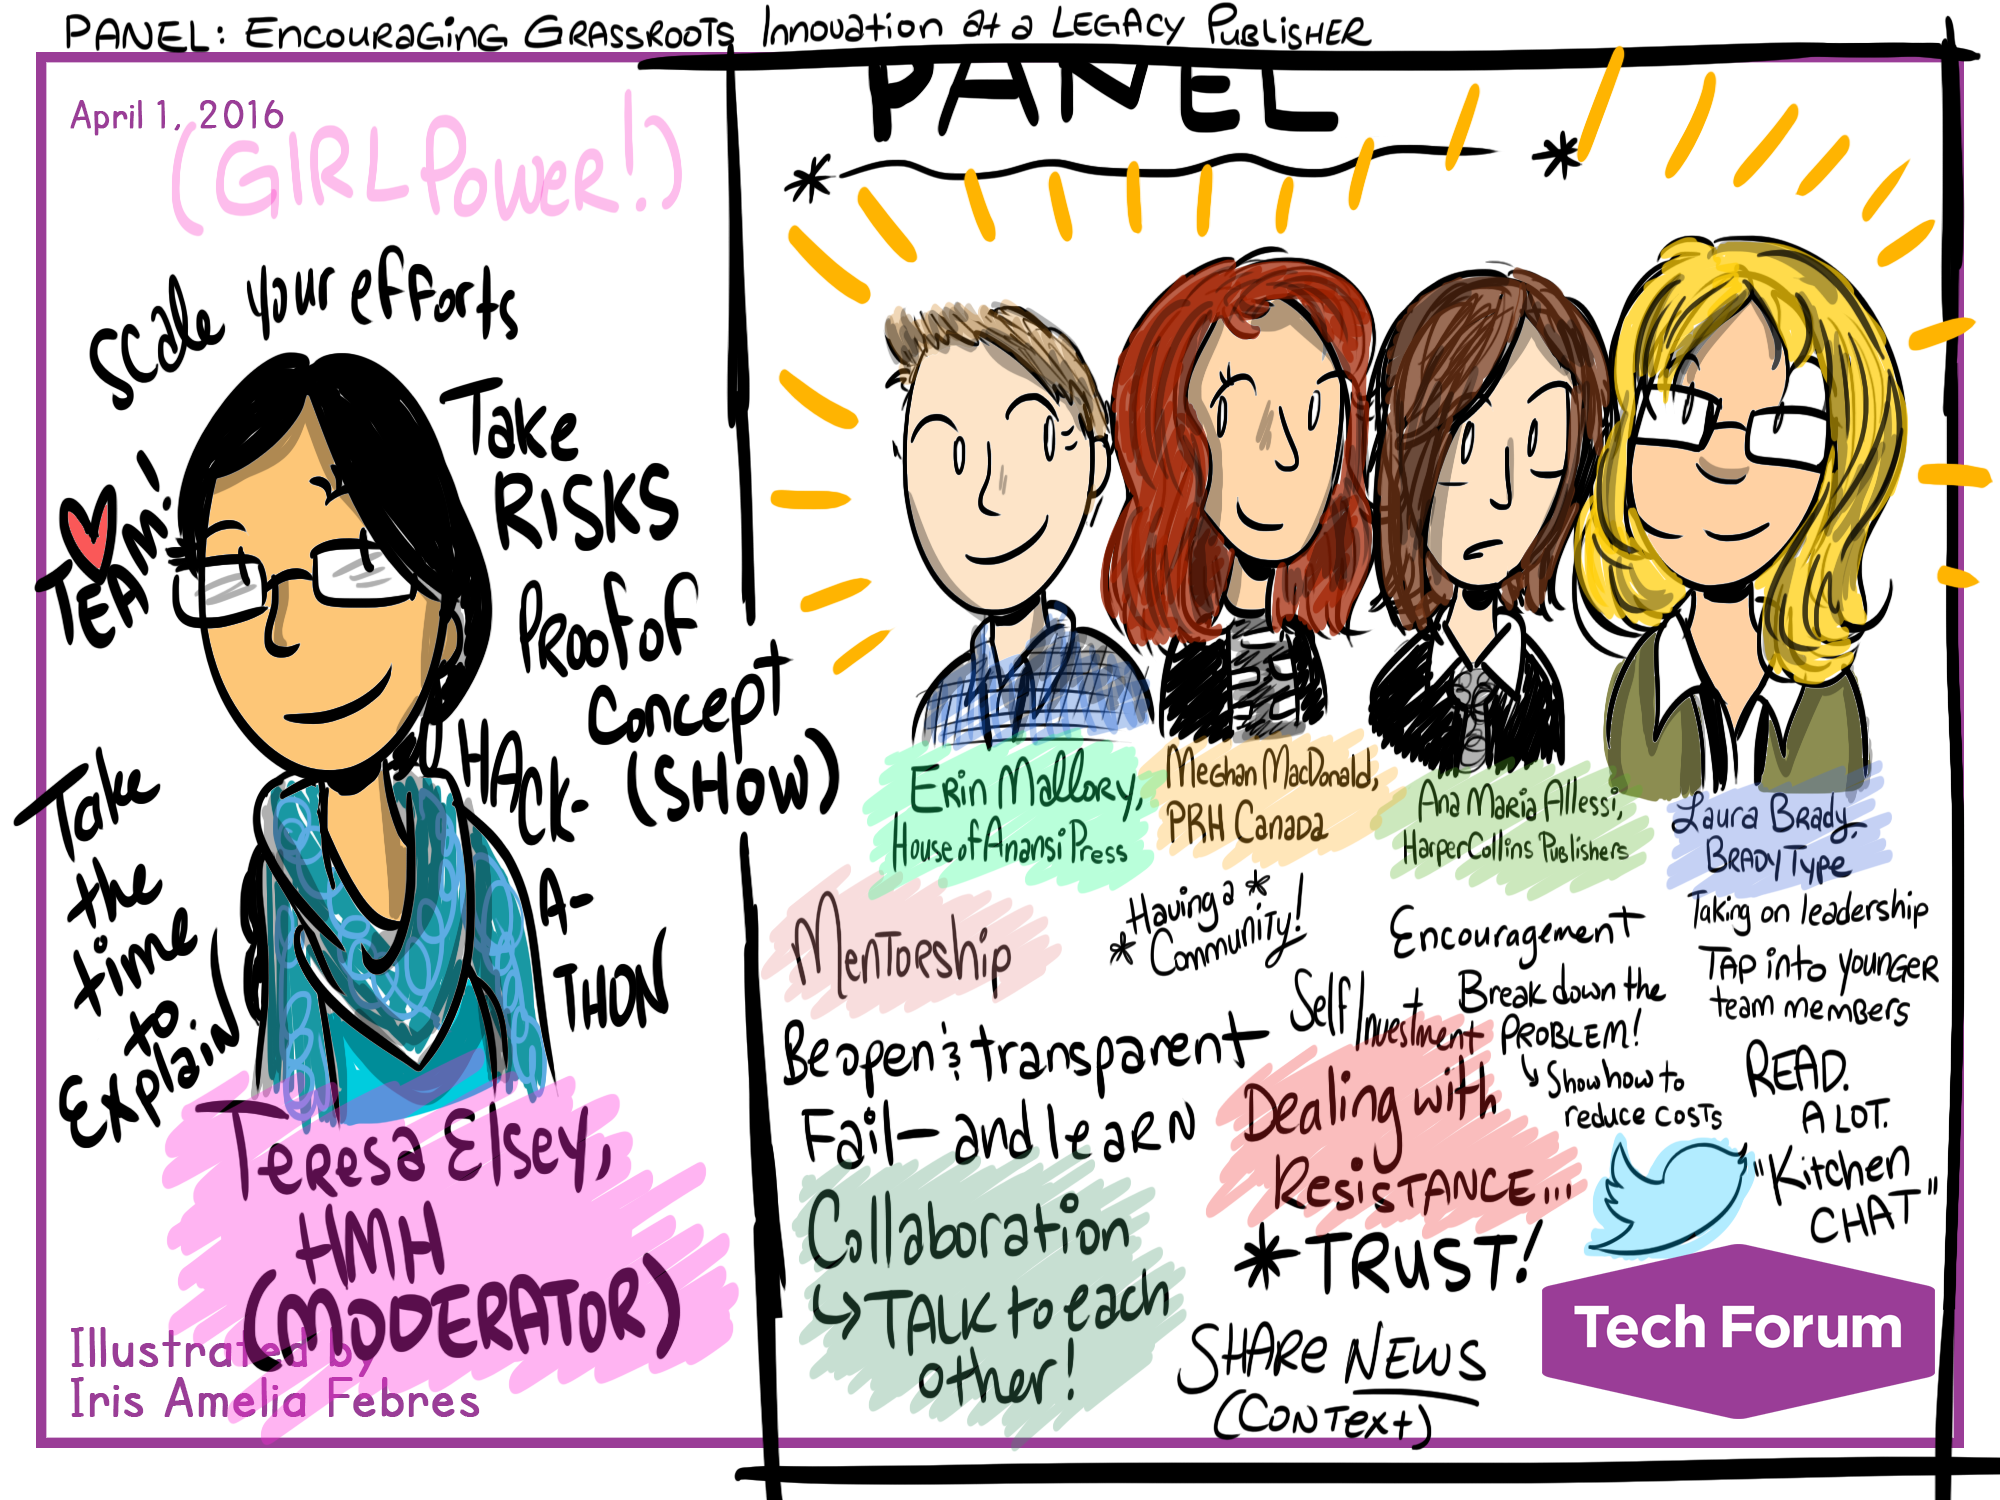 02_Panel-EncouragingGrassrootsInnovation.png